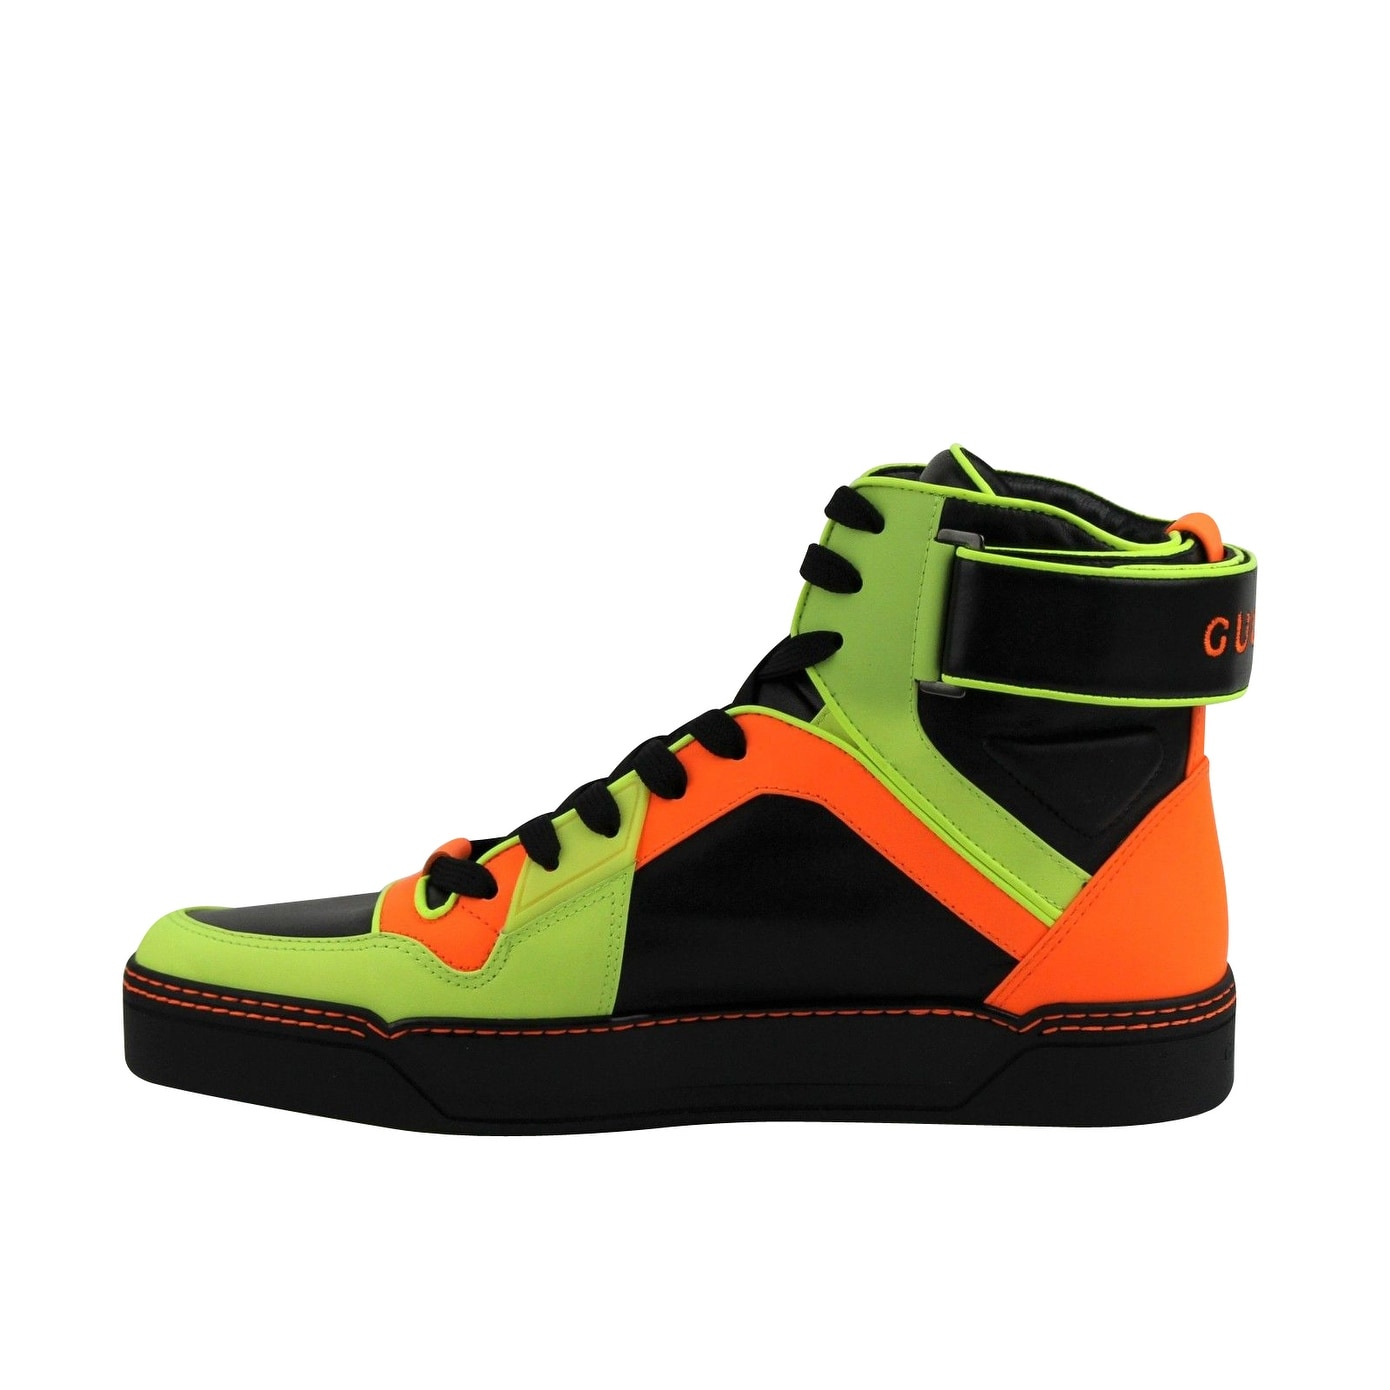 3385ce8e9 Shop Gucci High-Top Yellow / Green / Black Neon Leather Sneakers 386738  7170 - Free Shipping Today - Overstock - 28031628